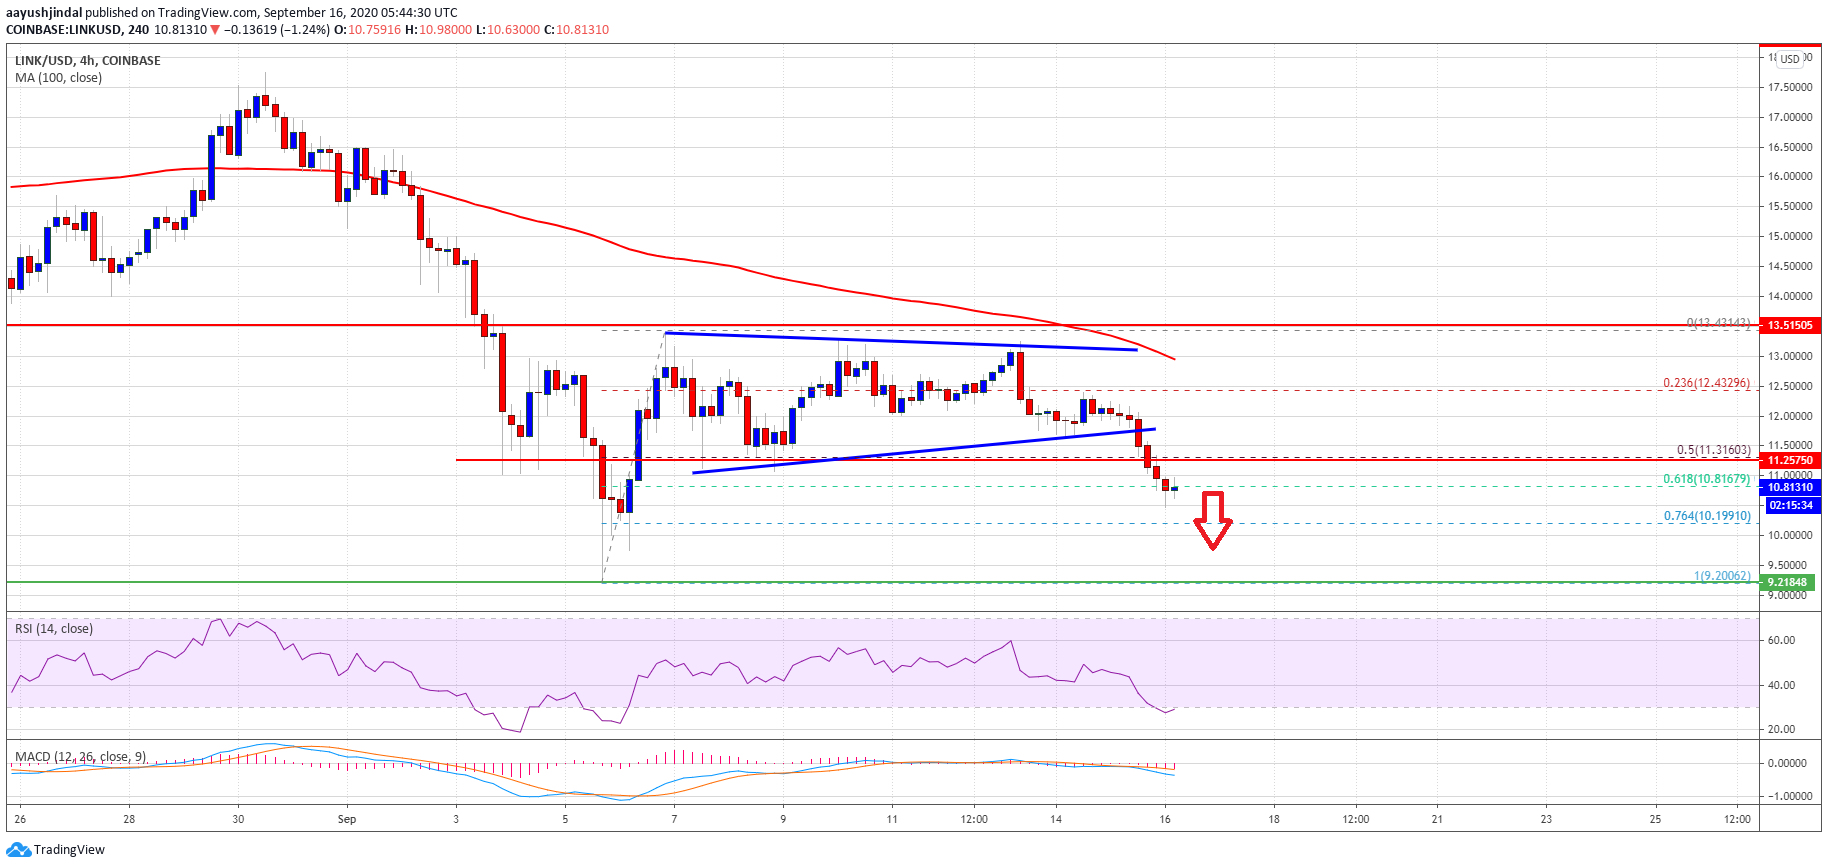 Chainlink (LINK) Nosedives 10%: Here's Why It Could Tumble Below $10